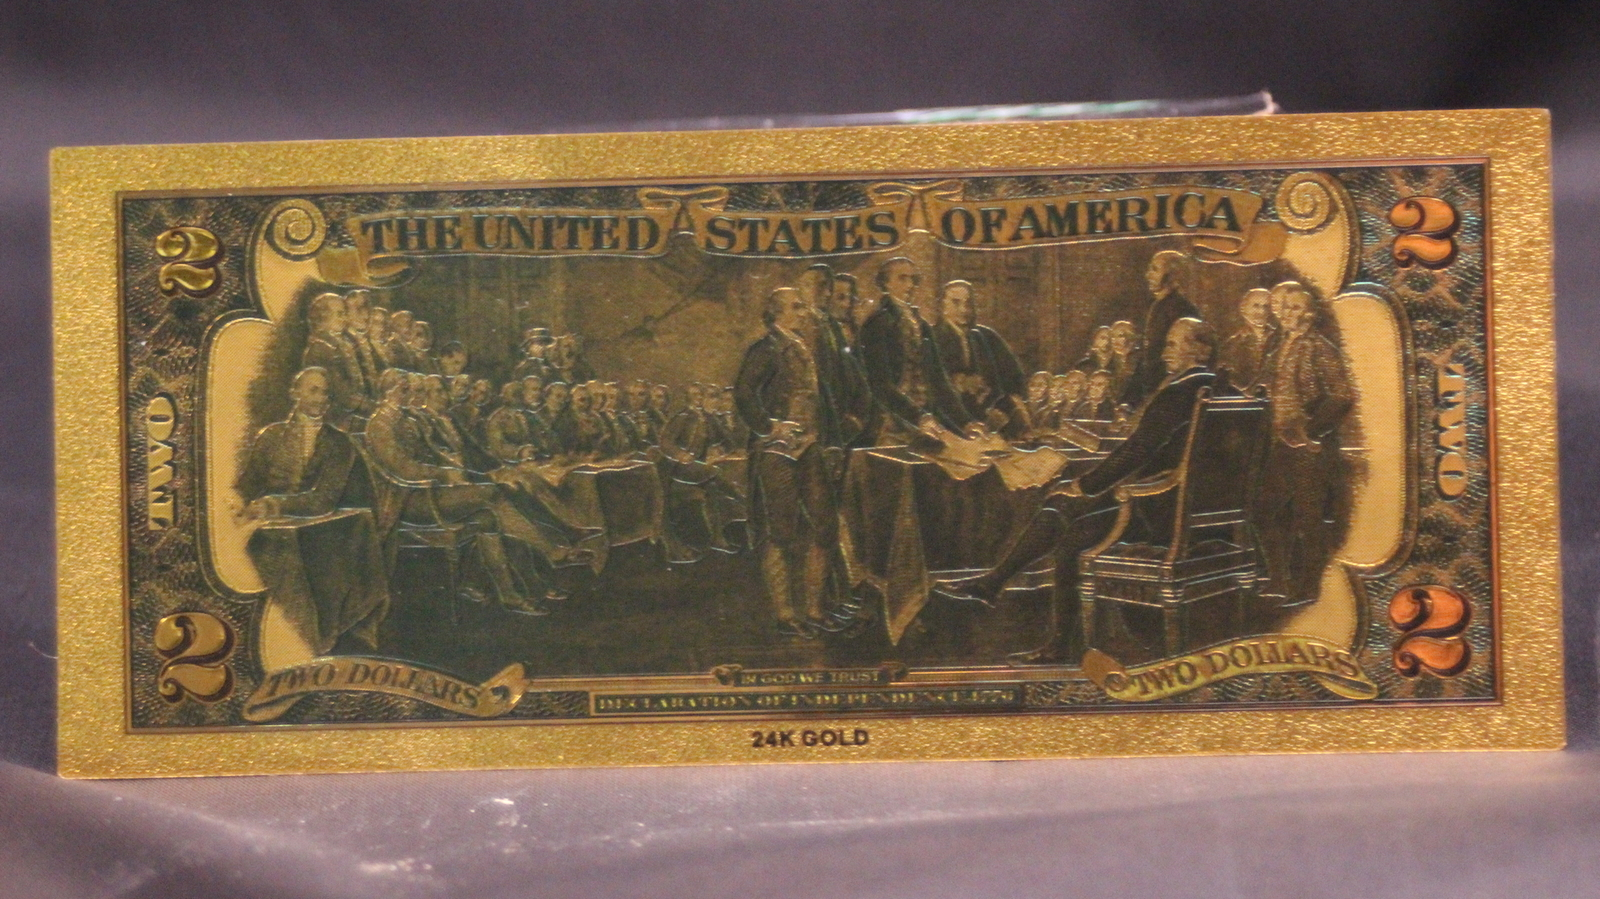 24K .9999 Pure GOLD Colorized $2 Dollar Bill Bank Note - Brand New Condition! A+